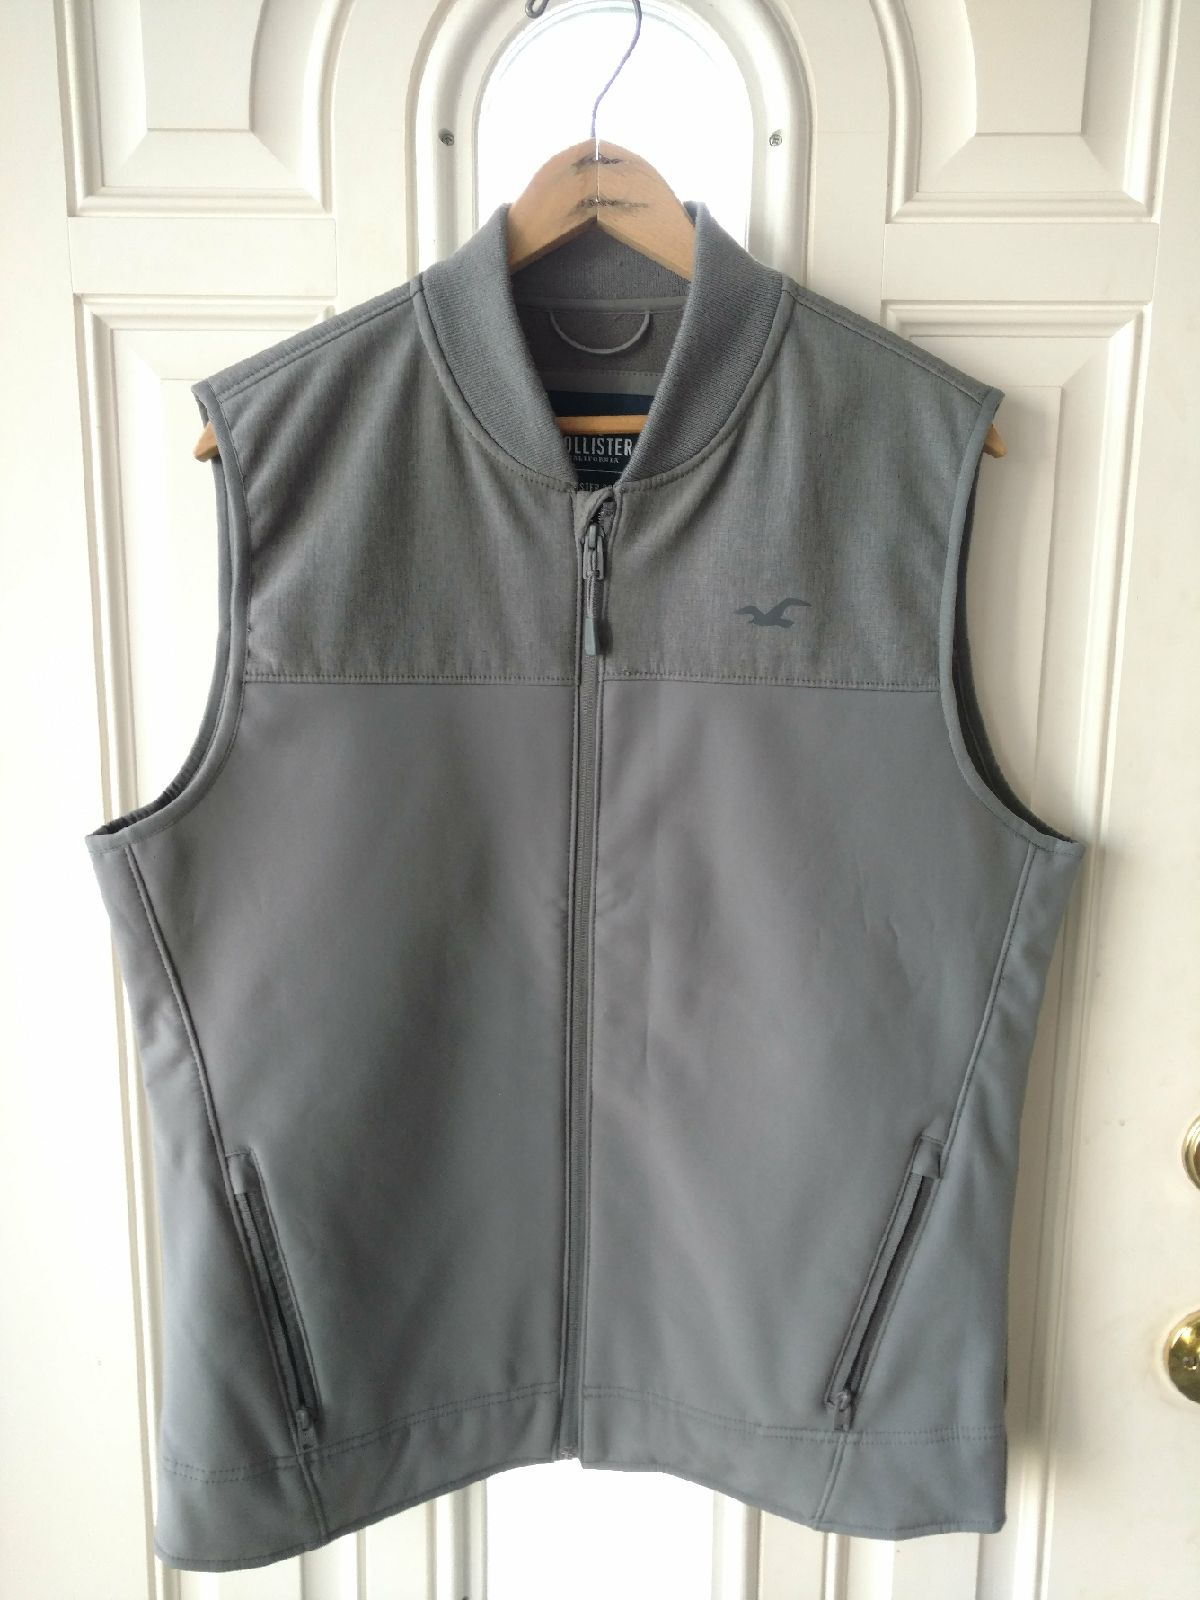 Mens Grey Hollister Vest